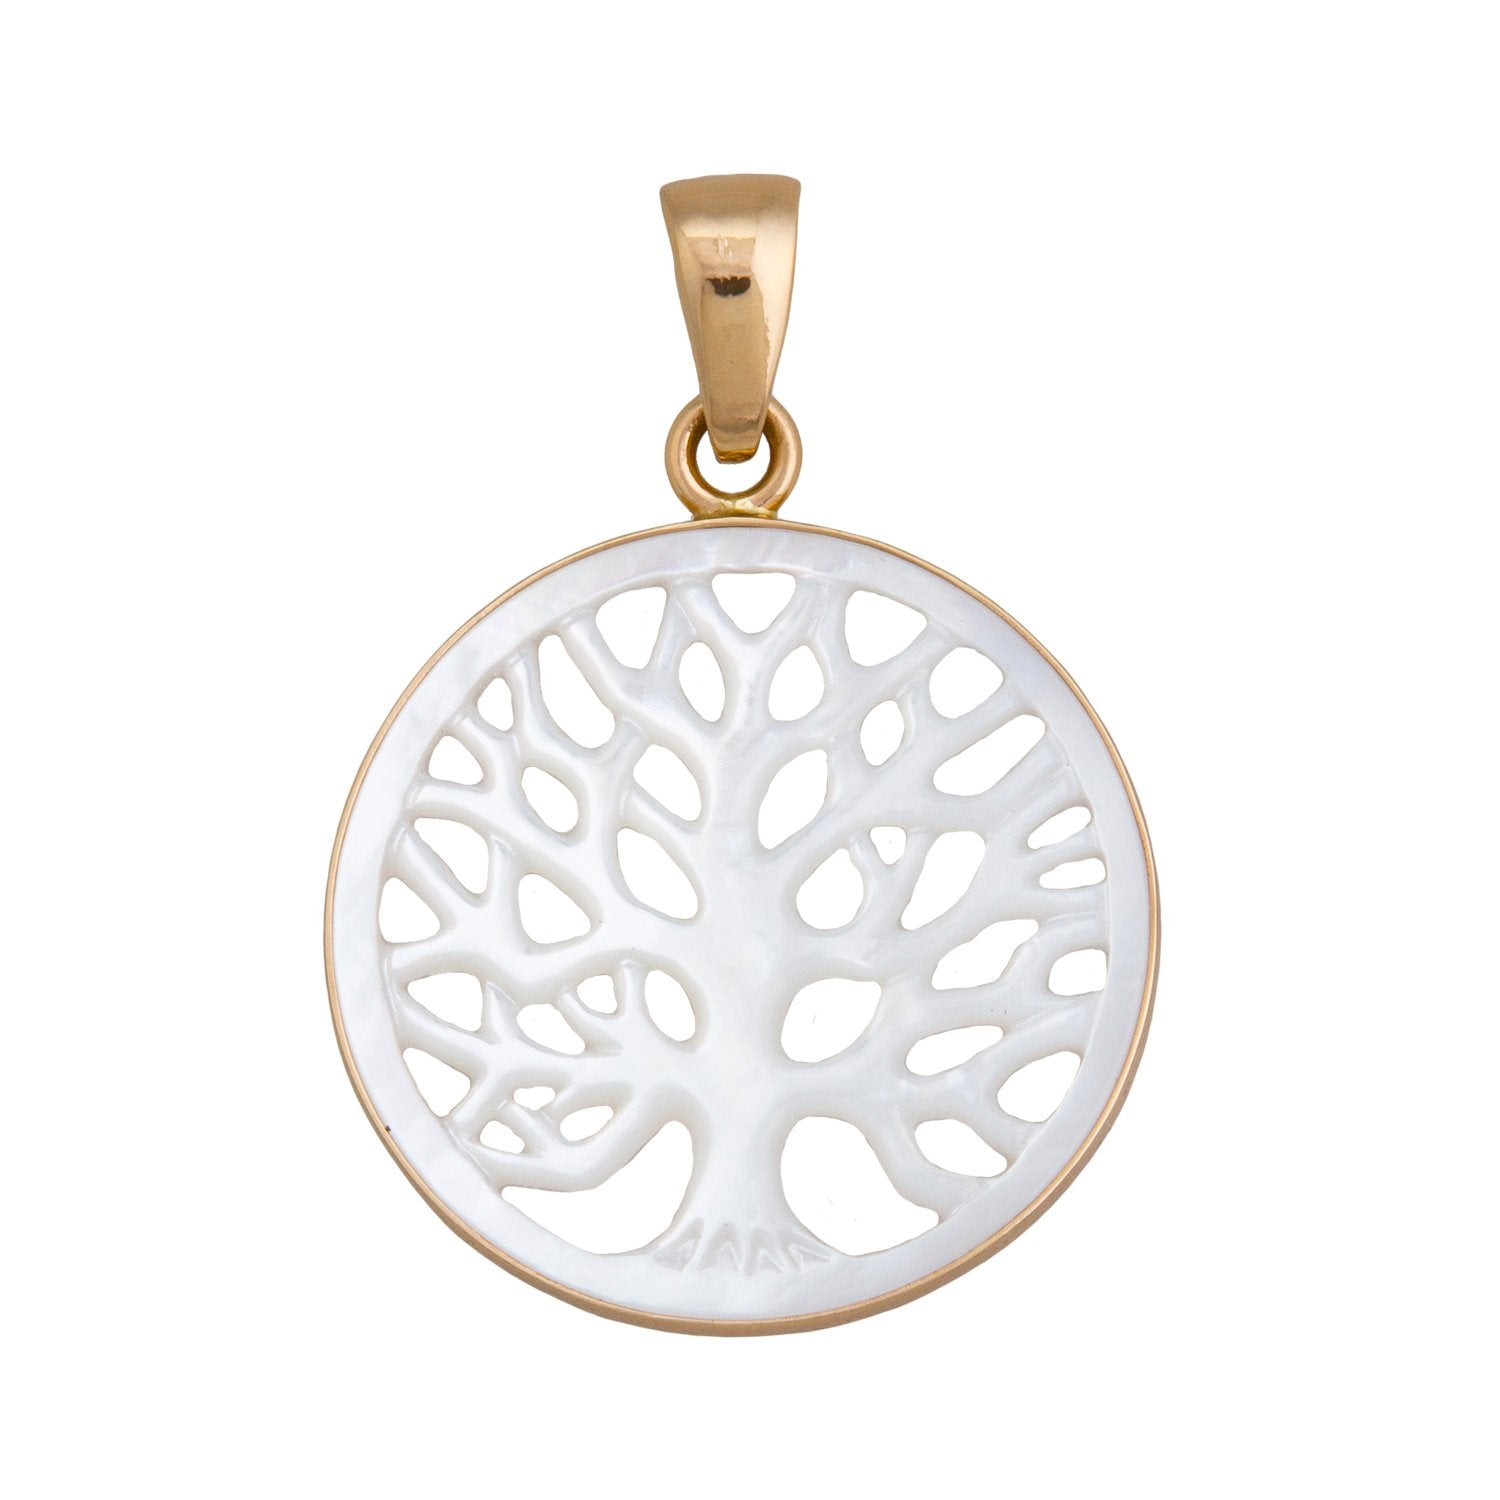 Alchemia 25mm Mother of Pearl Tree of Life Pendant | Charles Albert Jewelry